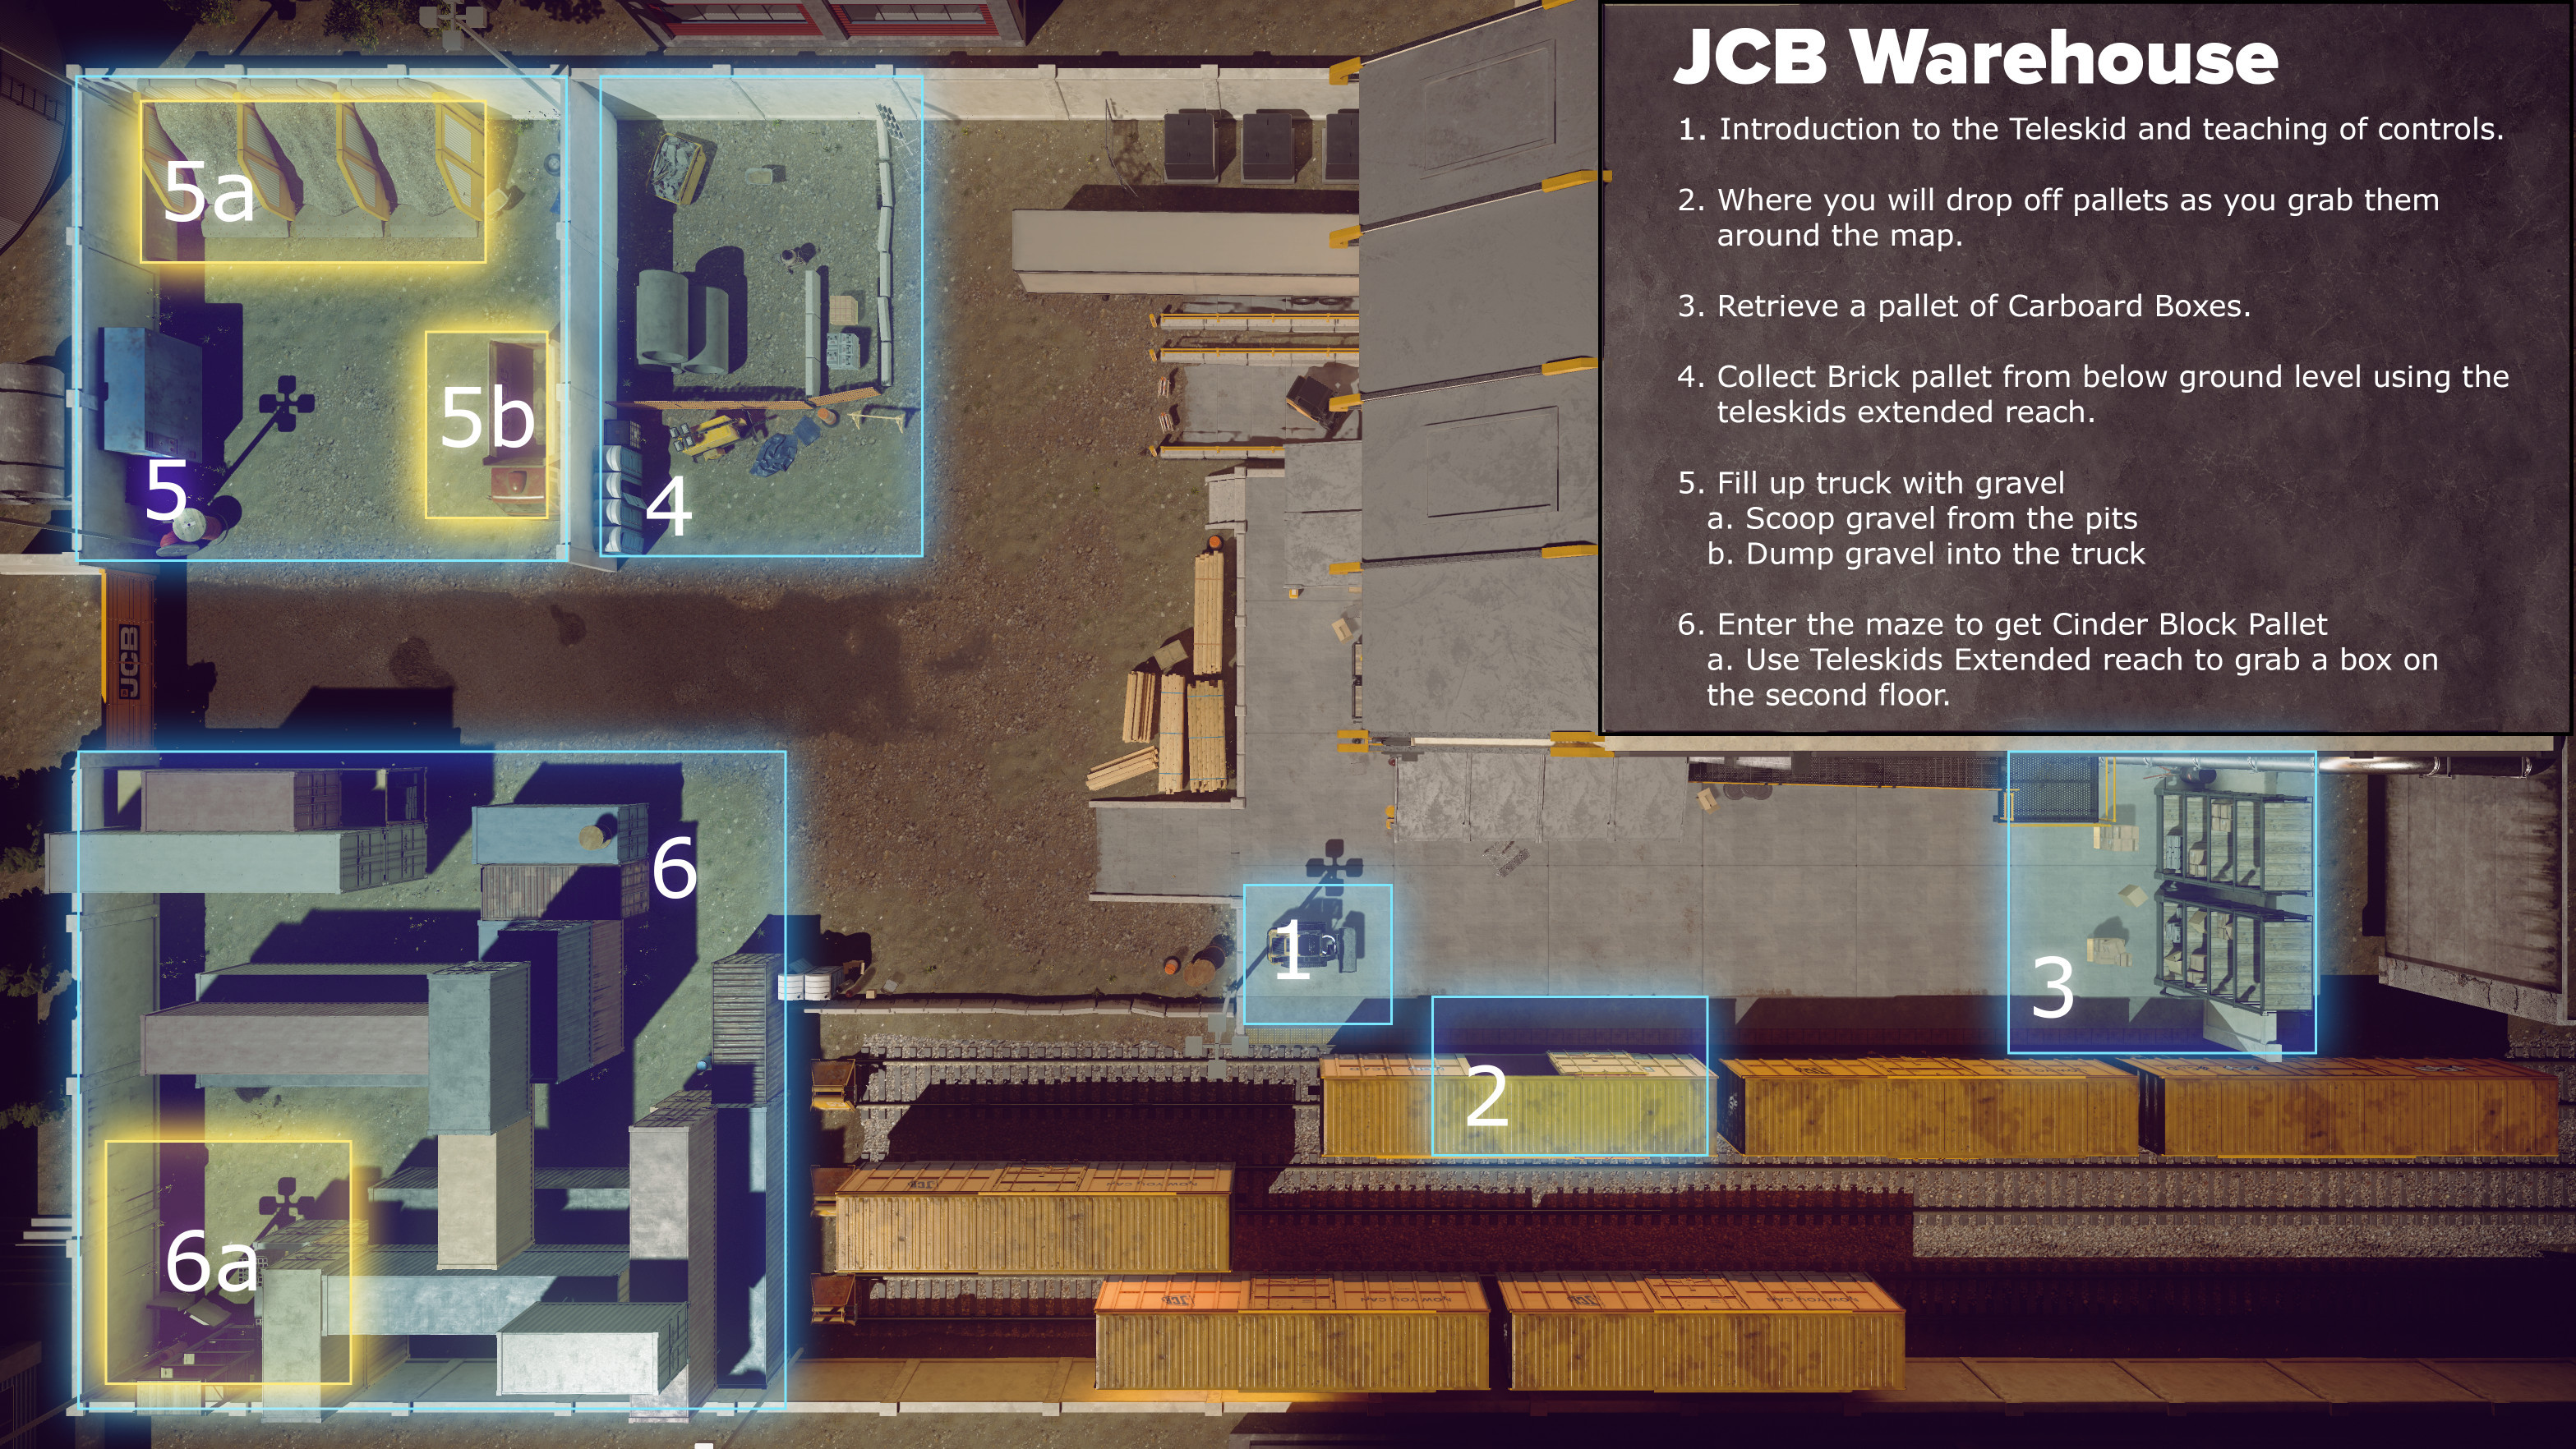 Overview of the gameplay space and the basic tasks involved in the demo